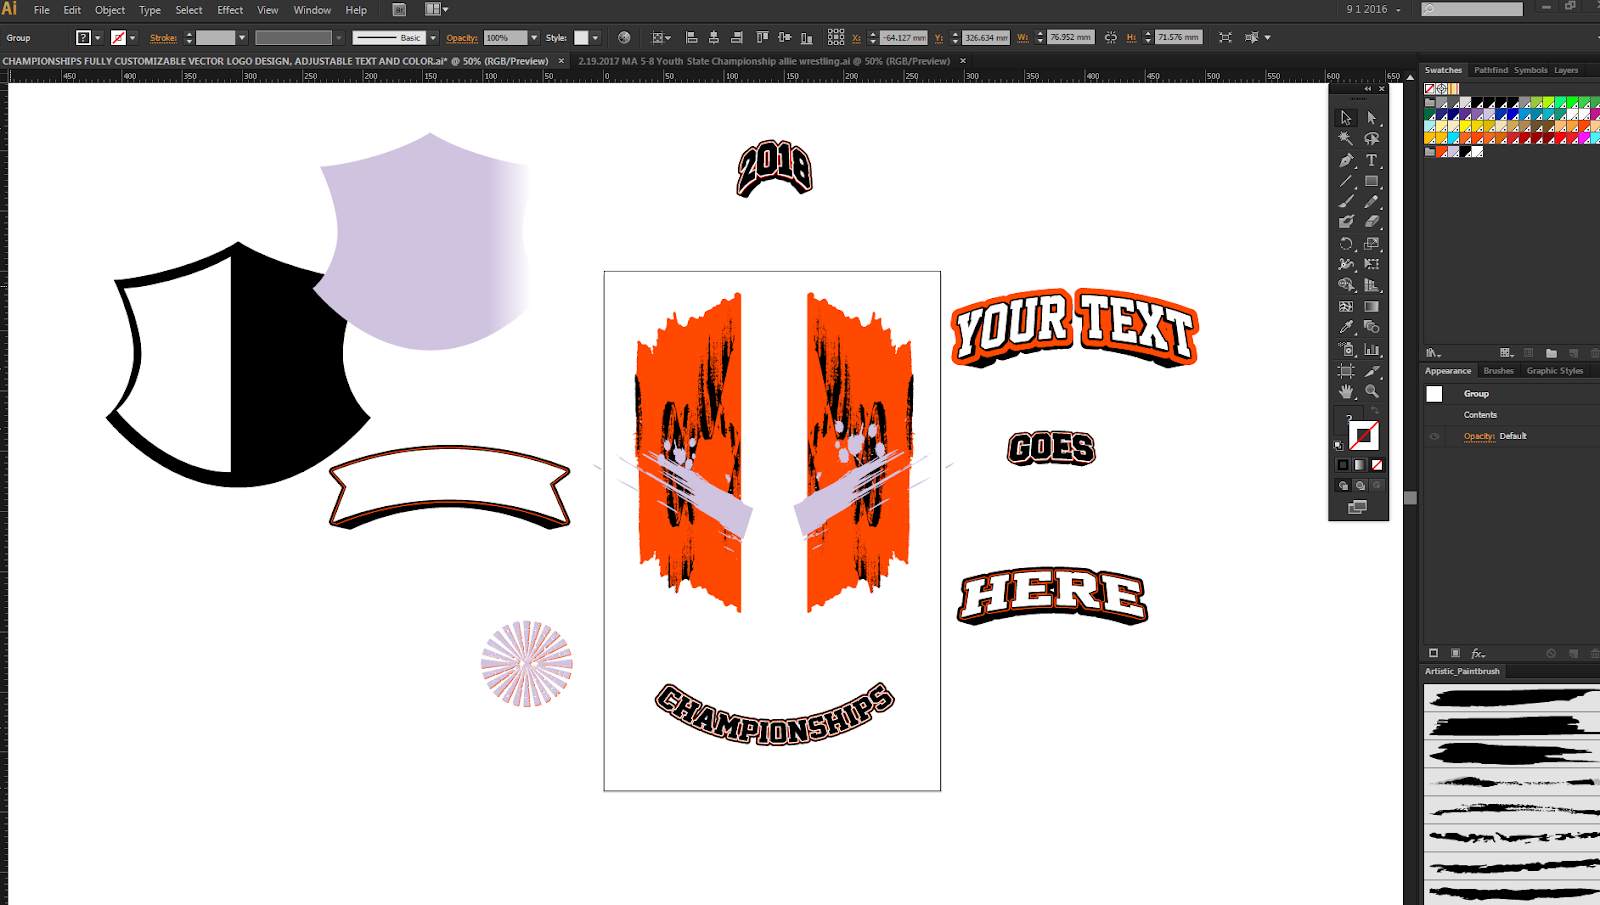 UPDATE LOGO DESIGN APPEARANCE, COLOR, TEXT, FONT AND GRAPHIC ELEMENTS